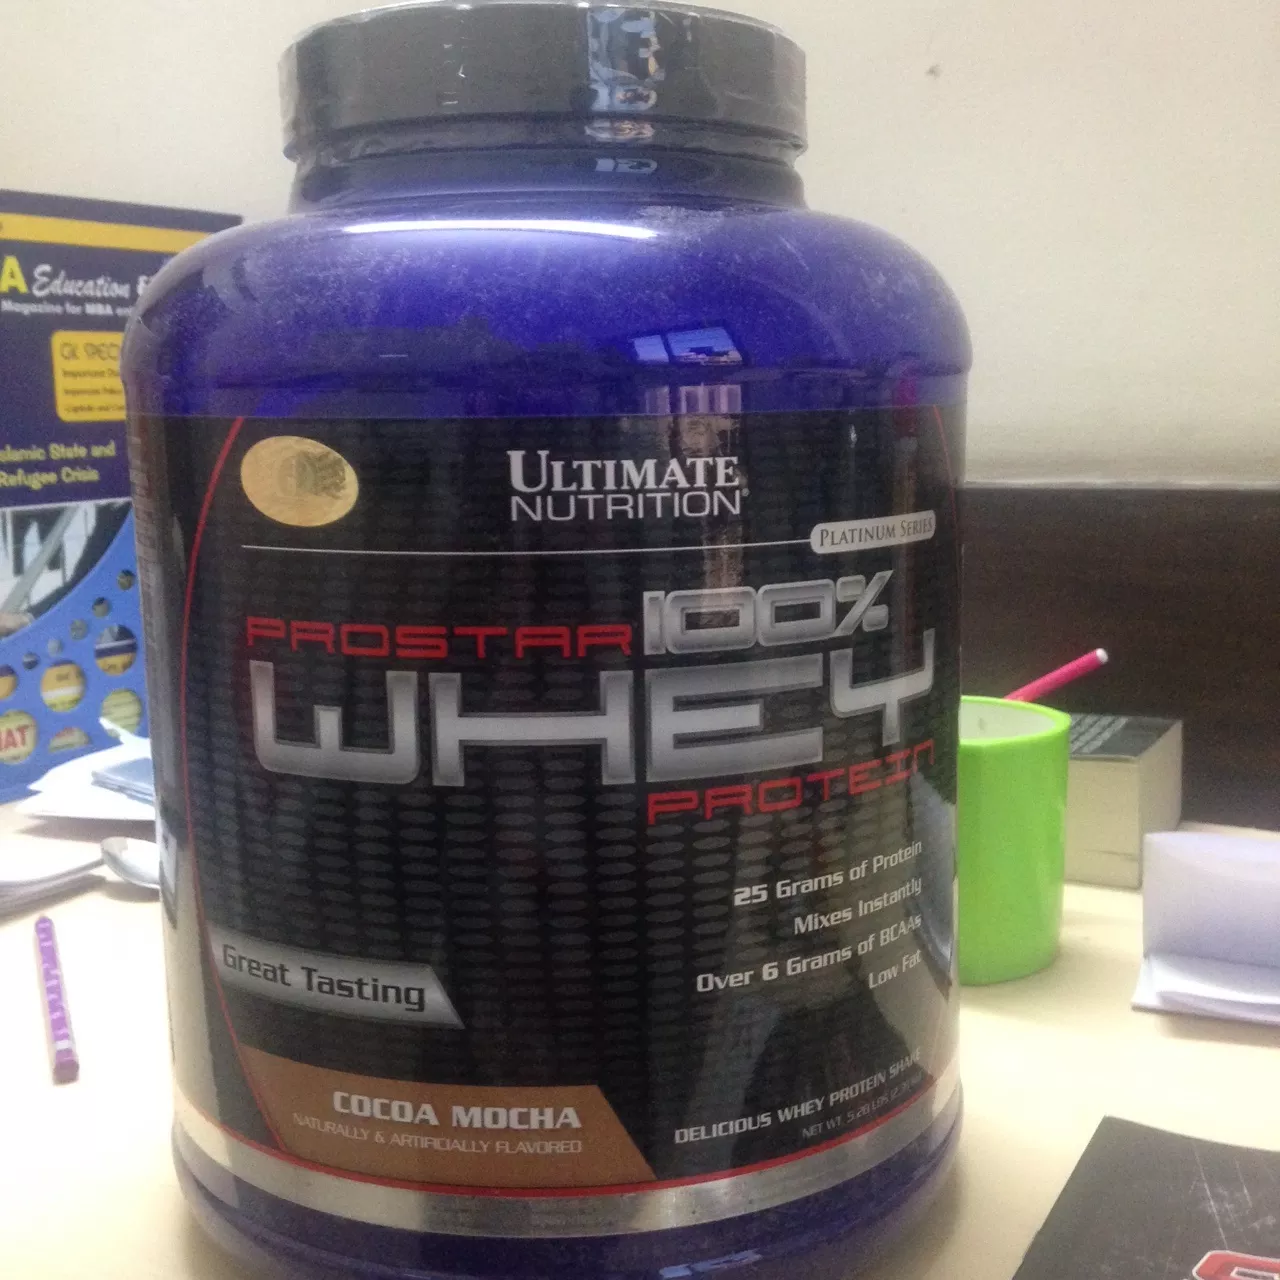 bc06c9575 Where can I buy original Whey Protein in Kolkata for fat loss and muscle  gain